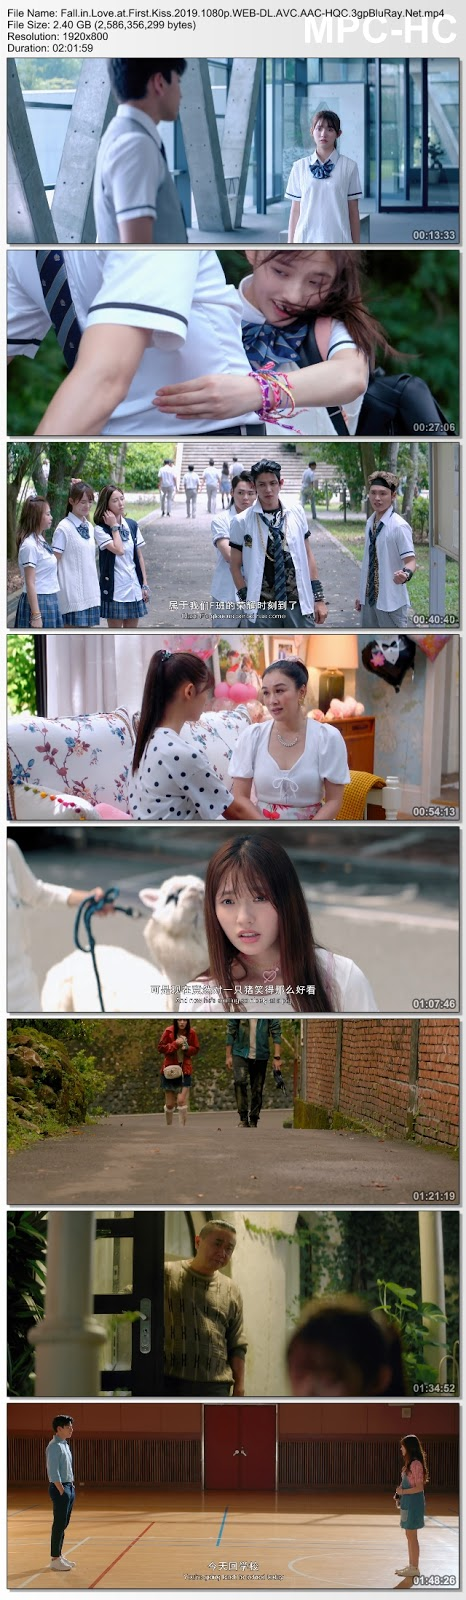 Screenshots Download Fall in Love at First Kiss (2019)